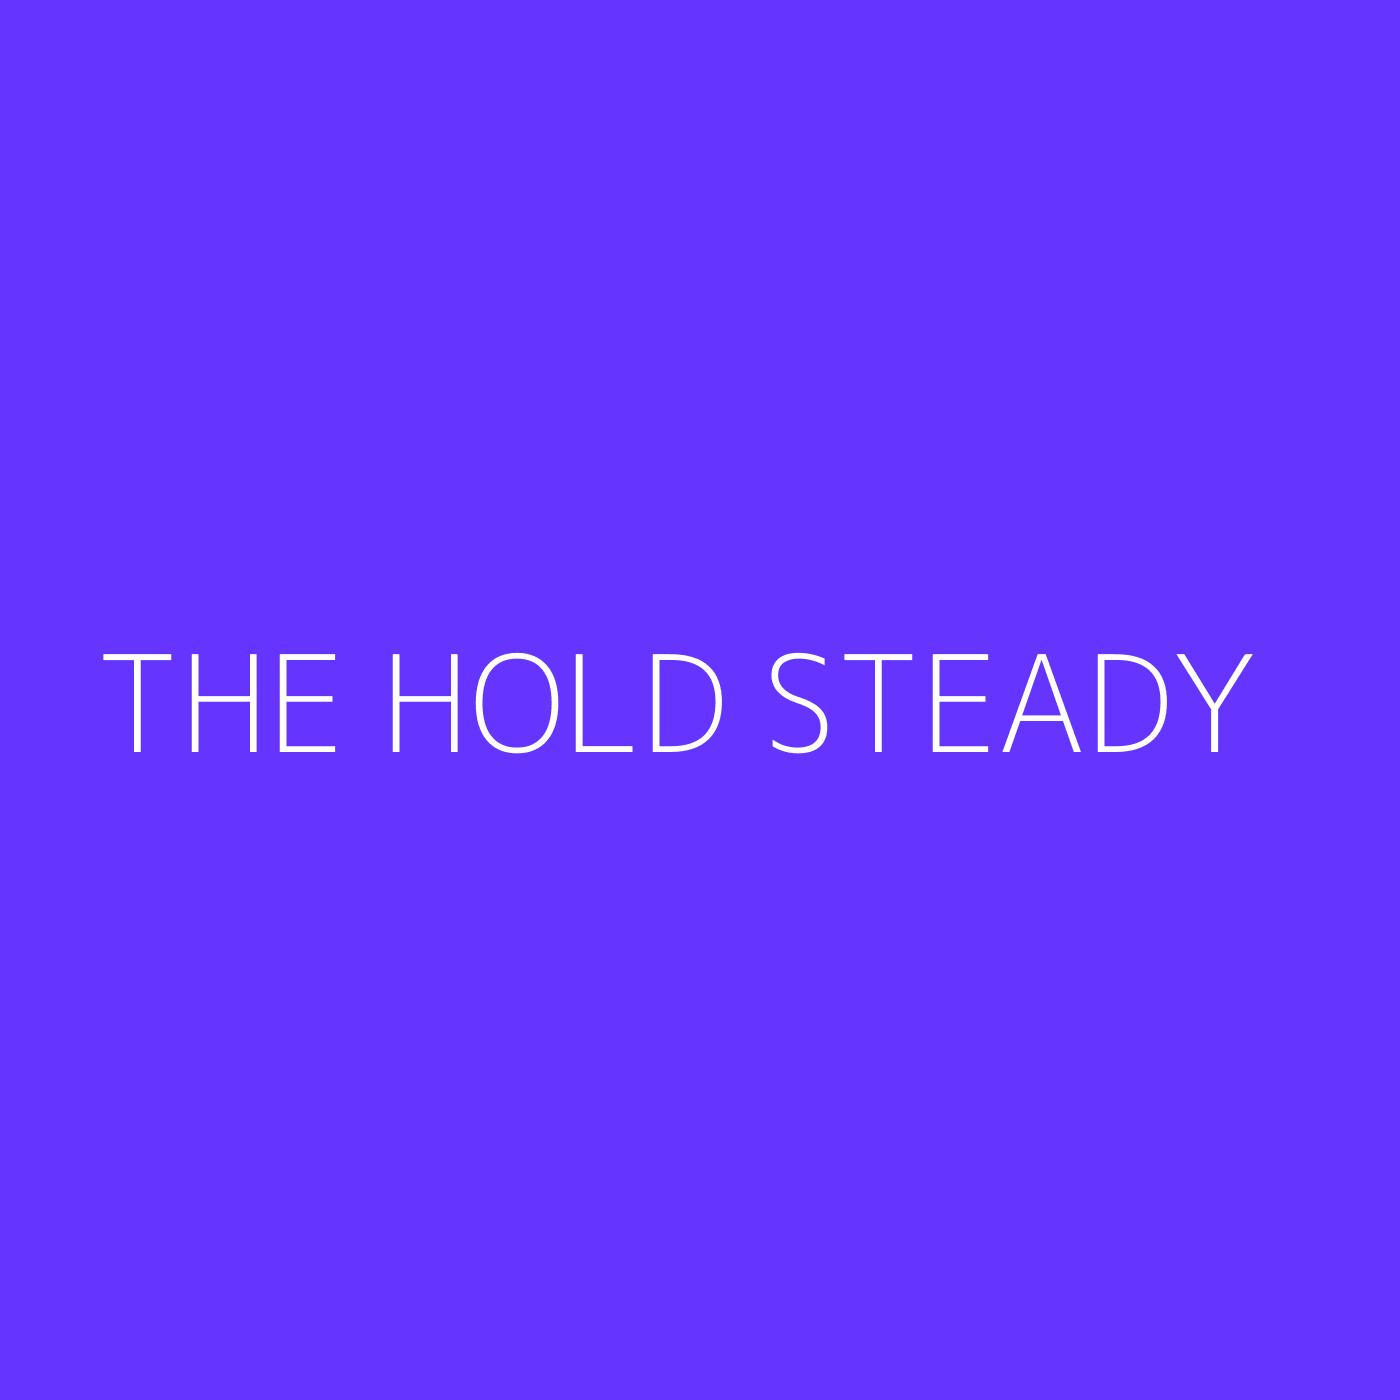 The Hold Steady Playlist Artwork